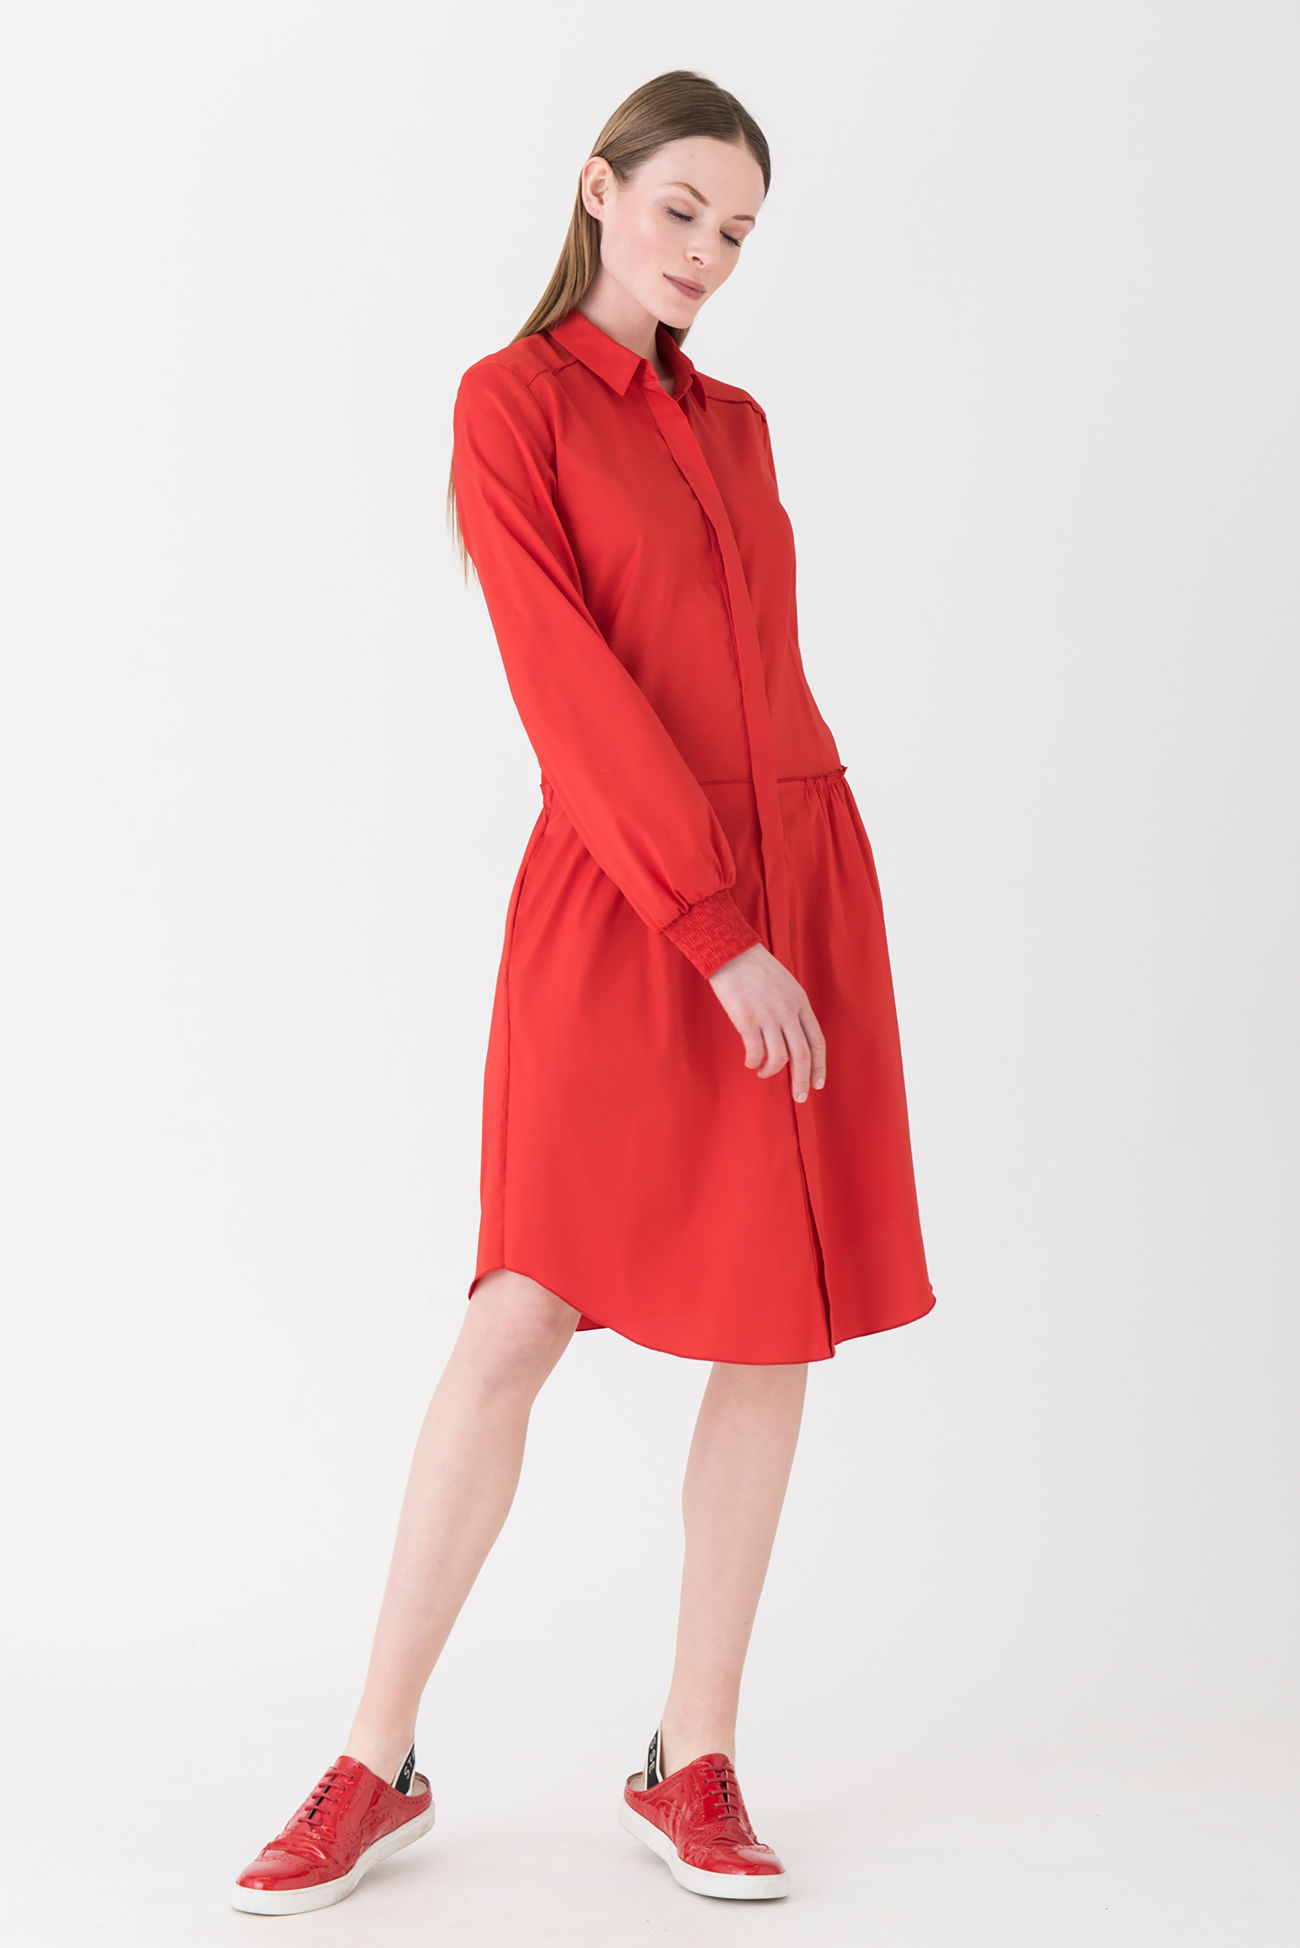 Casual shirtdress for every occasion